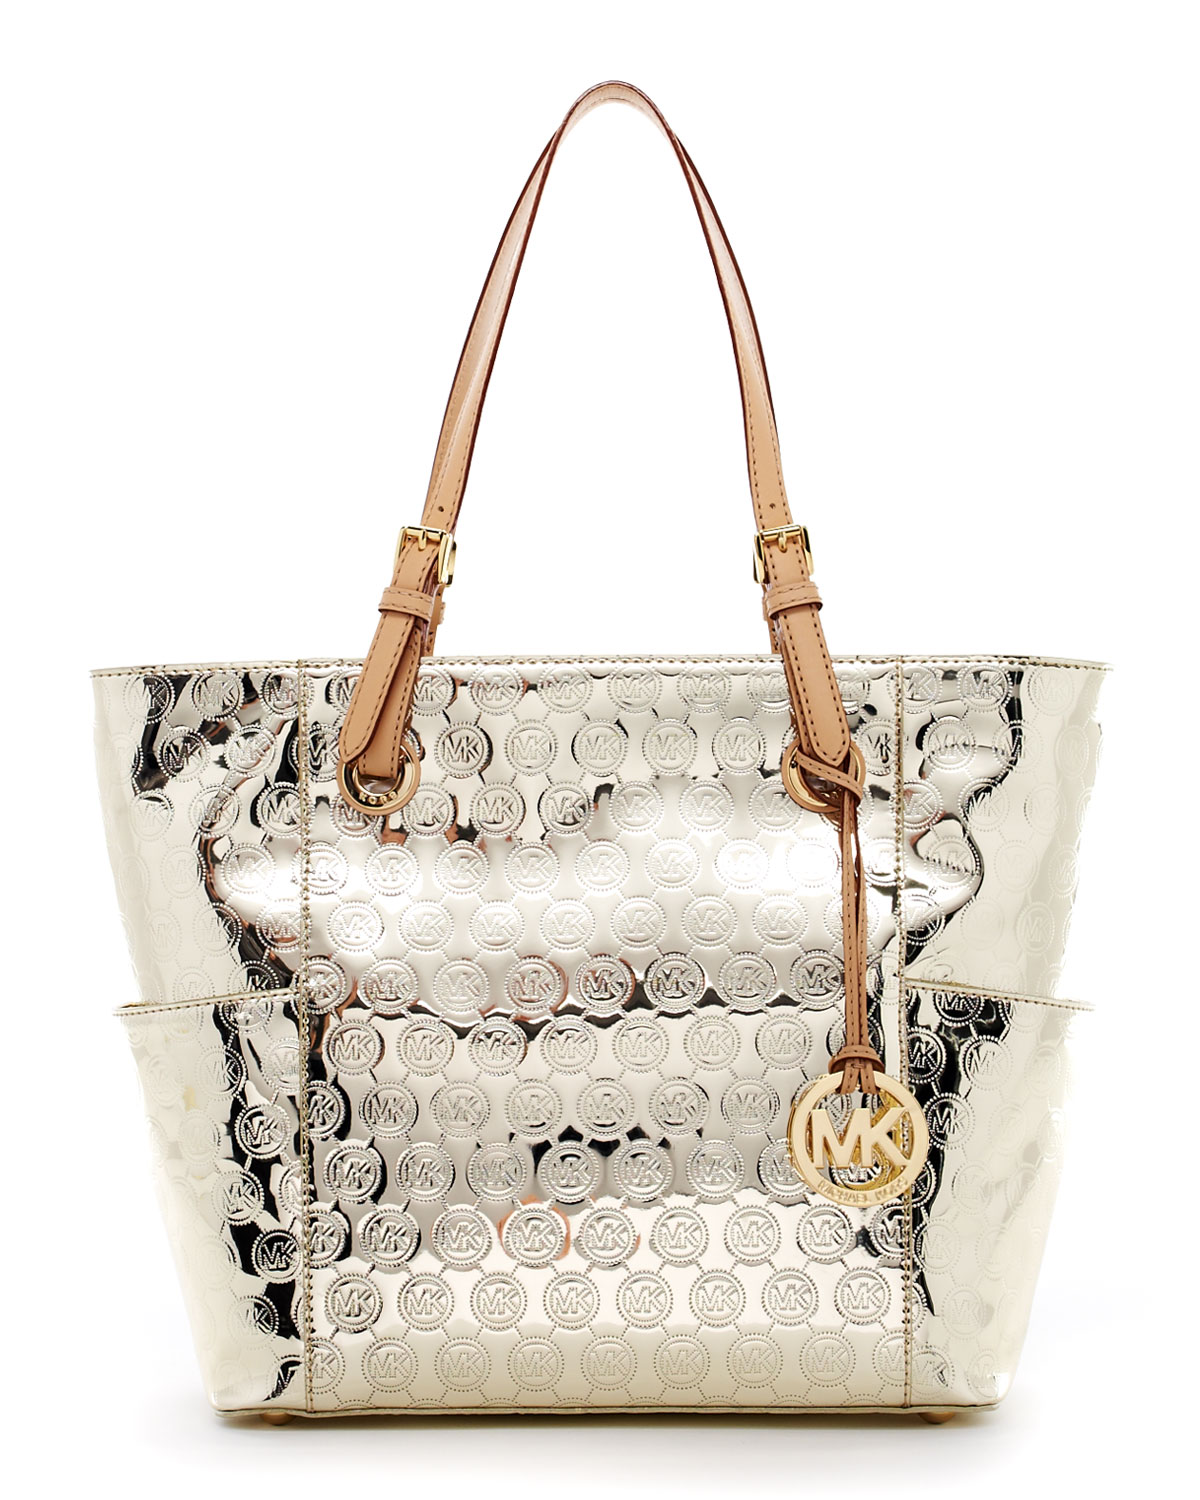 12b138c6f862 Michael Kors Jet Set Monogram Signature Item Tote Pale Gold in ...